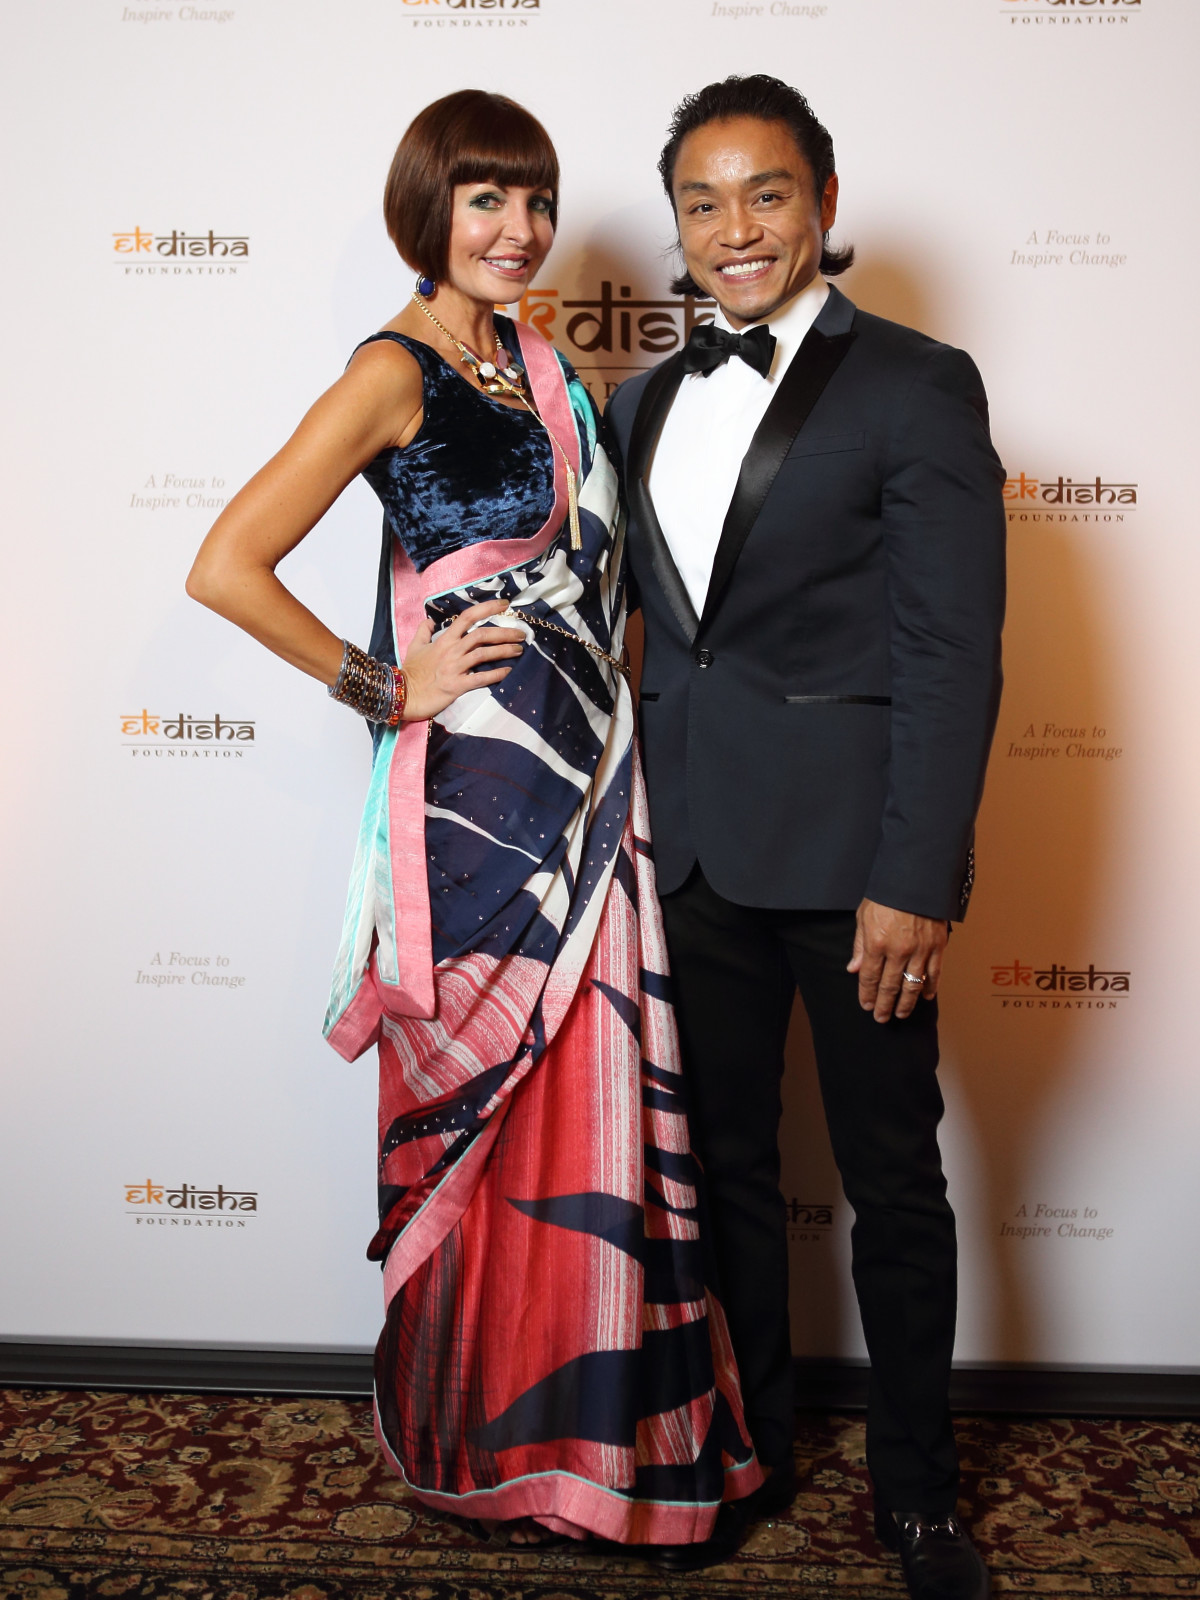 Bass Gala 2015 Staci Henderson and Dr. Quang Henderson